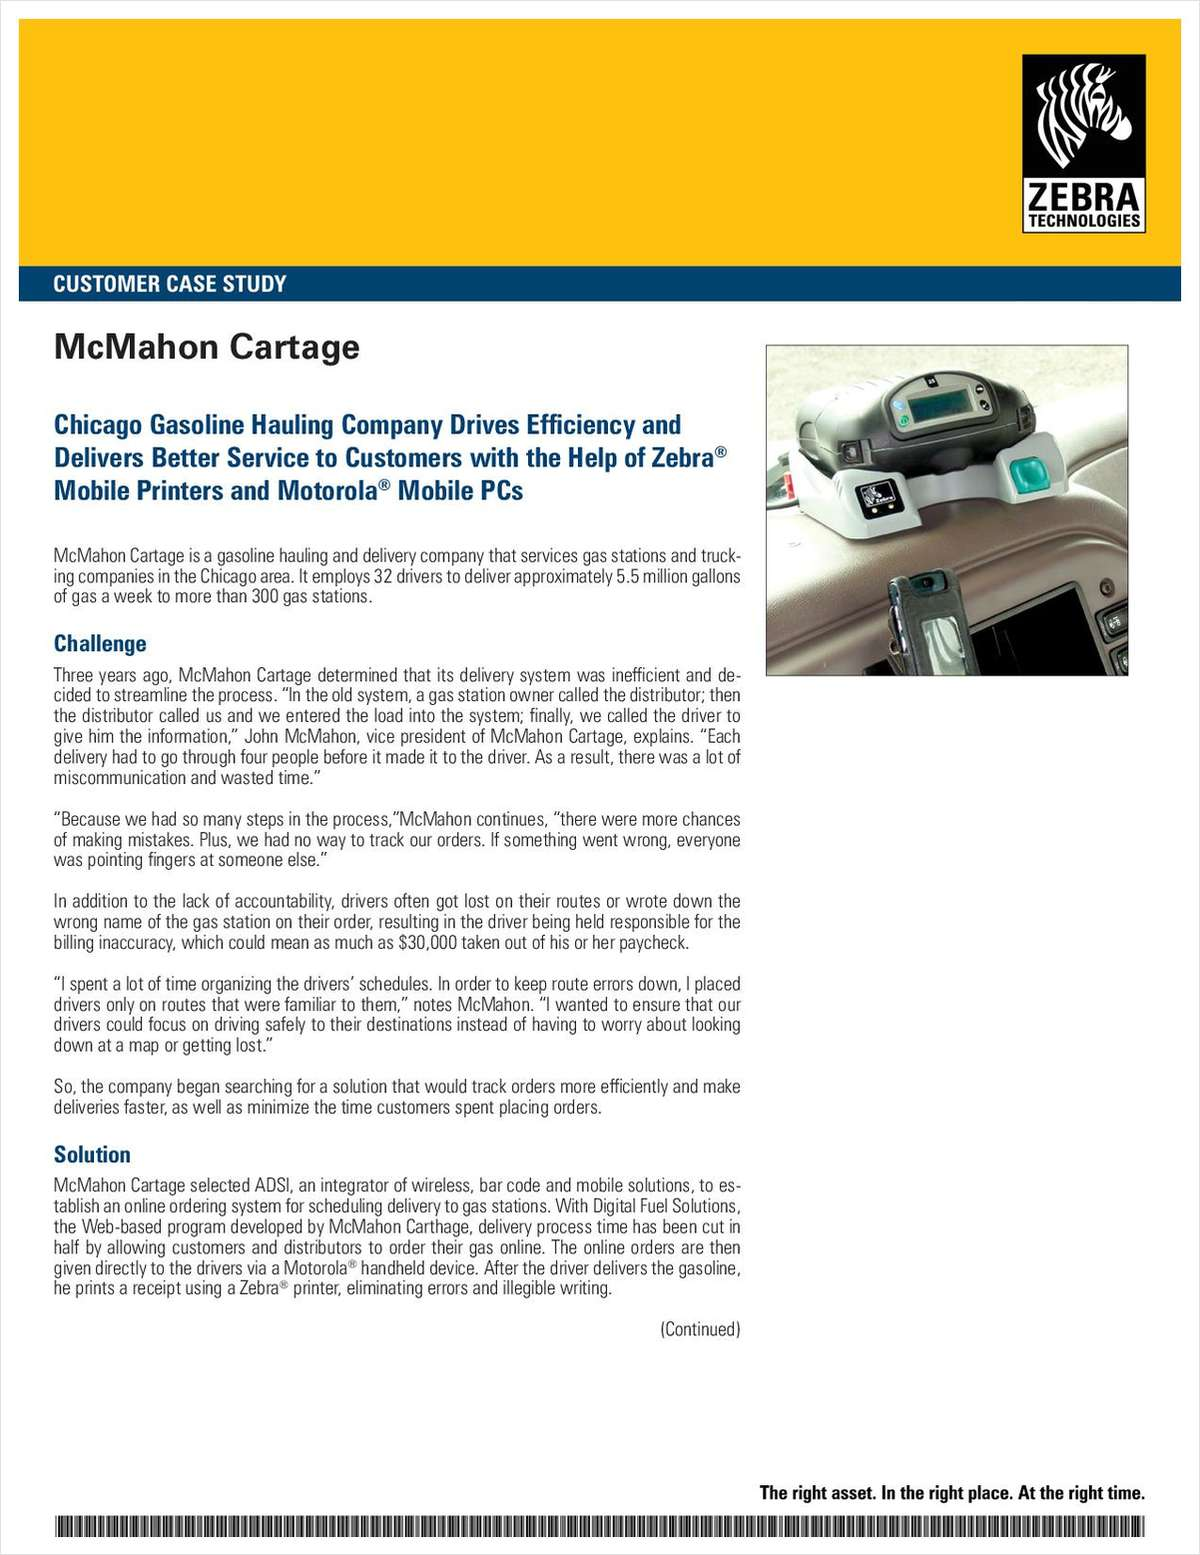 Gas Hauler Drives Efficiency with Mobile Printers & PCs